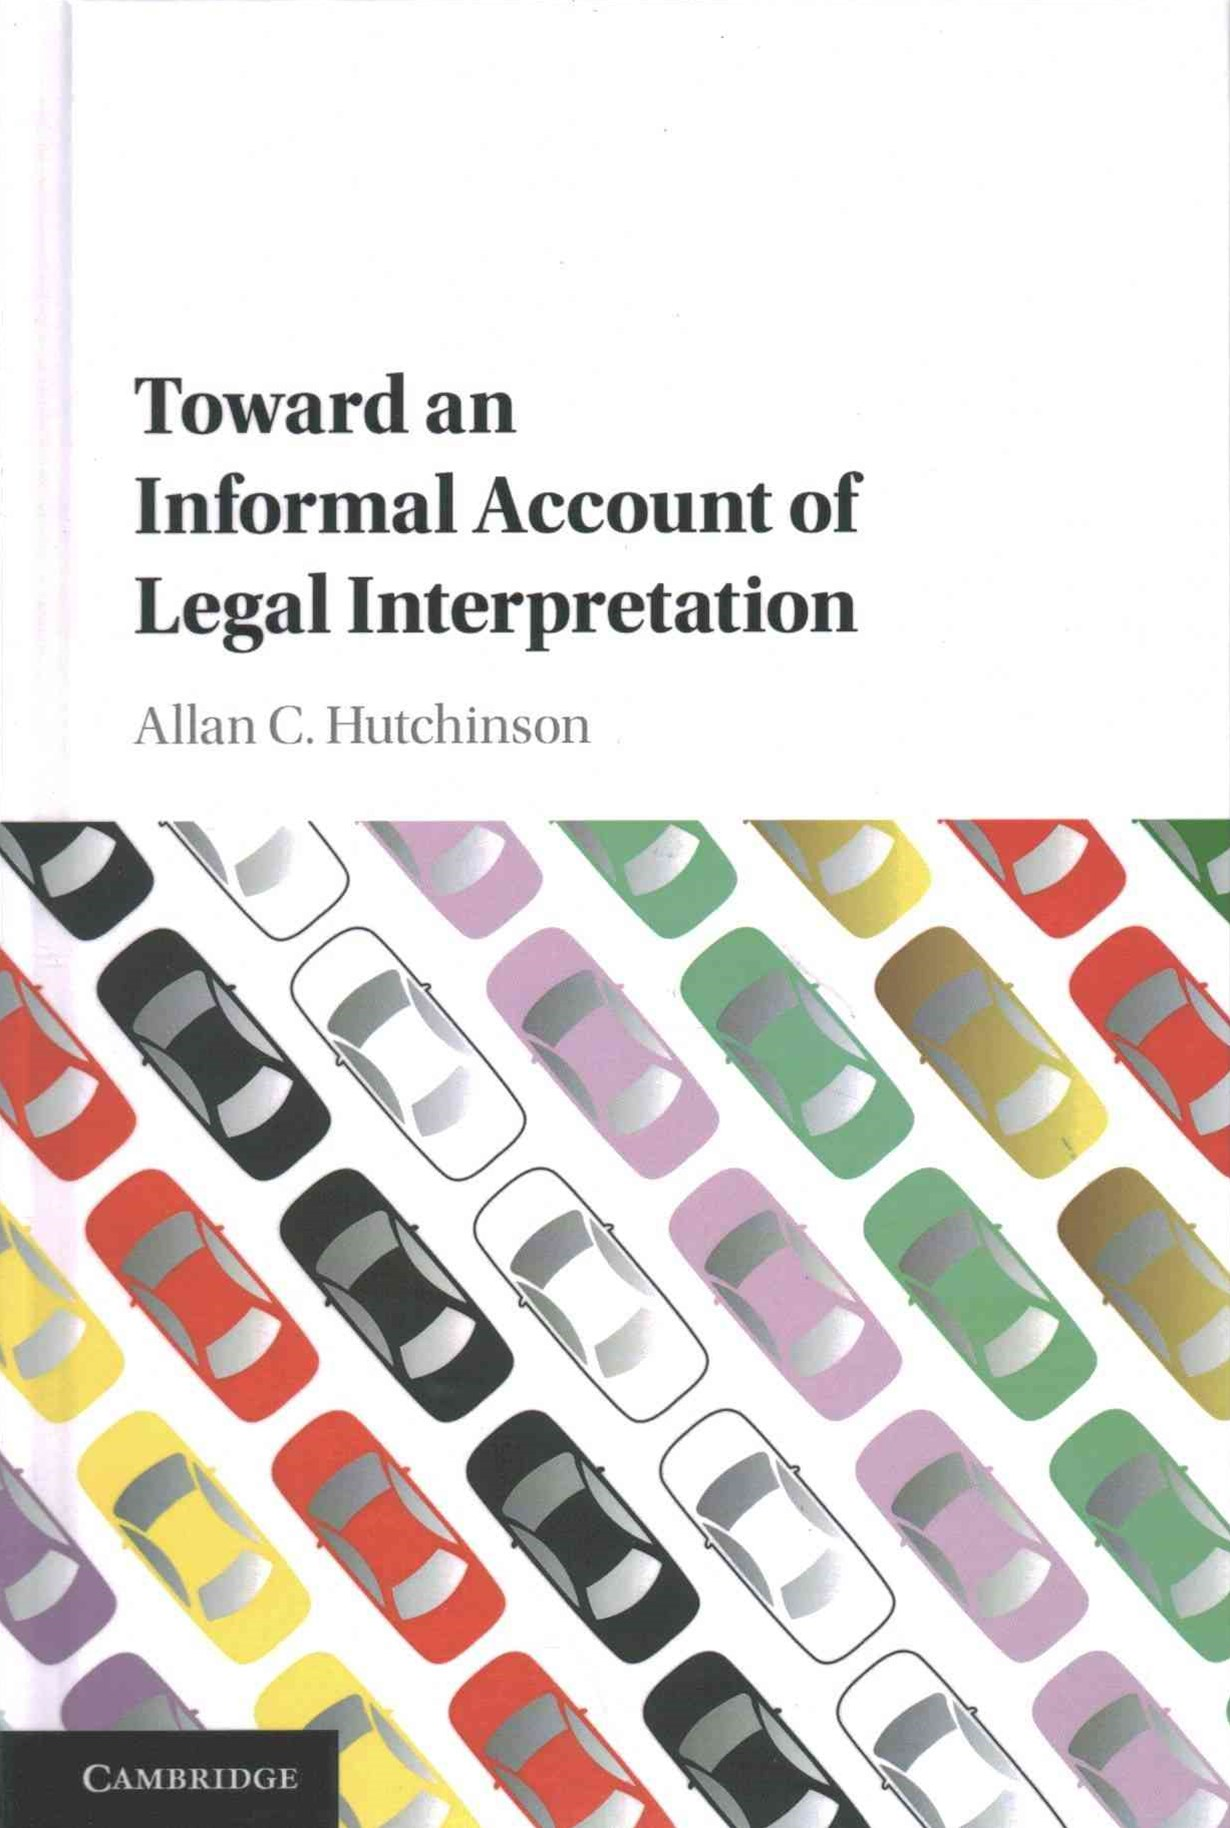 Toward an Informal Account of Legal Interpretation